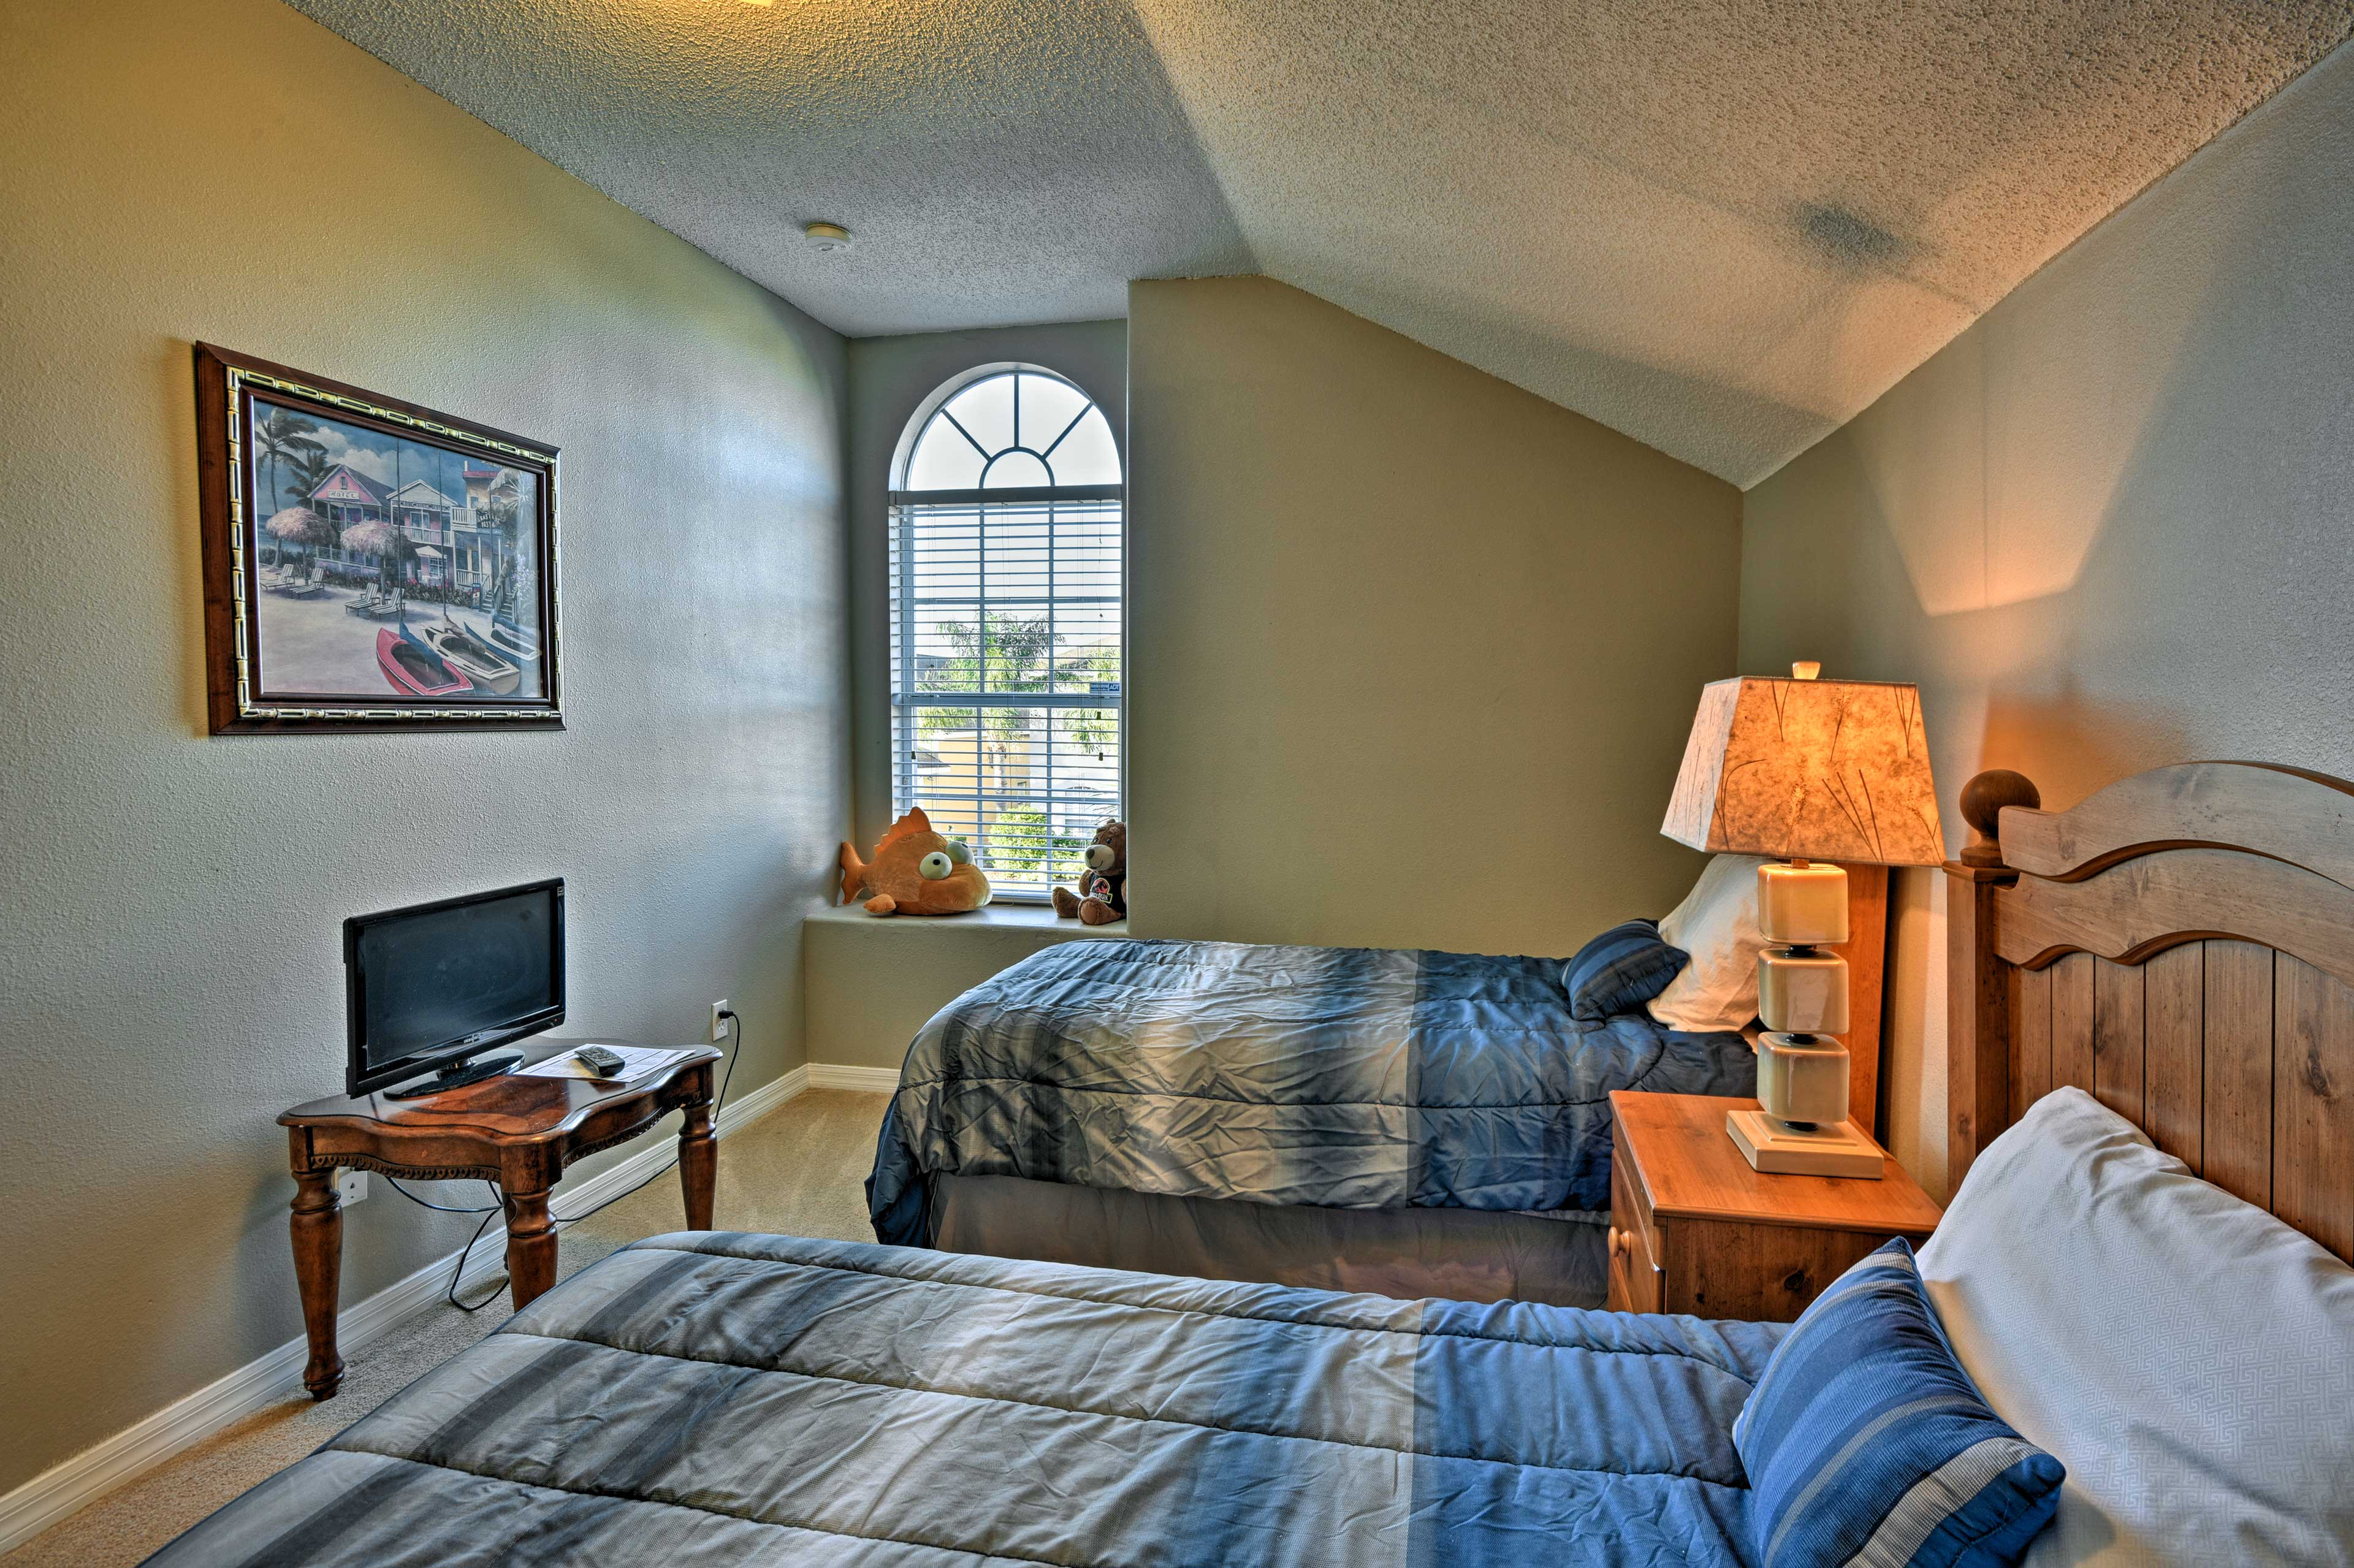 This fourth bedroom comes complete with 2 twin beds - perfect for the kids!